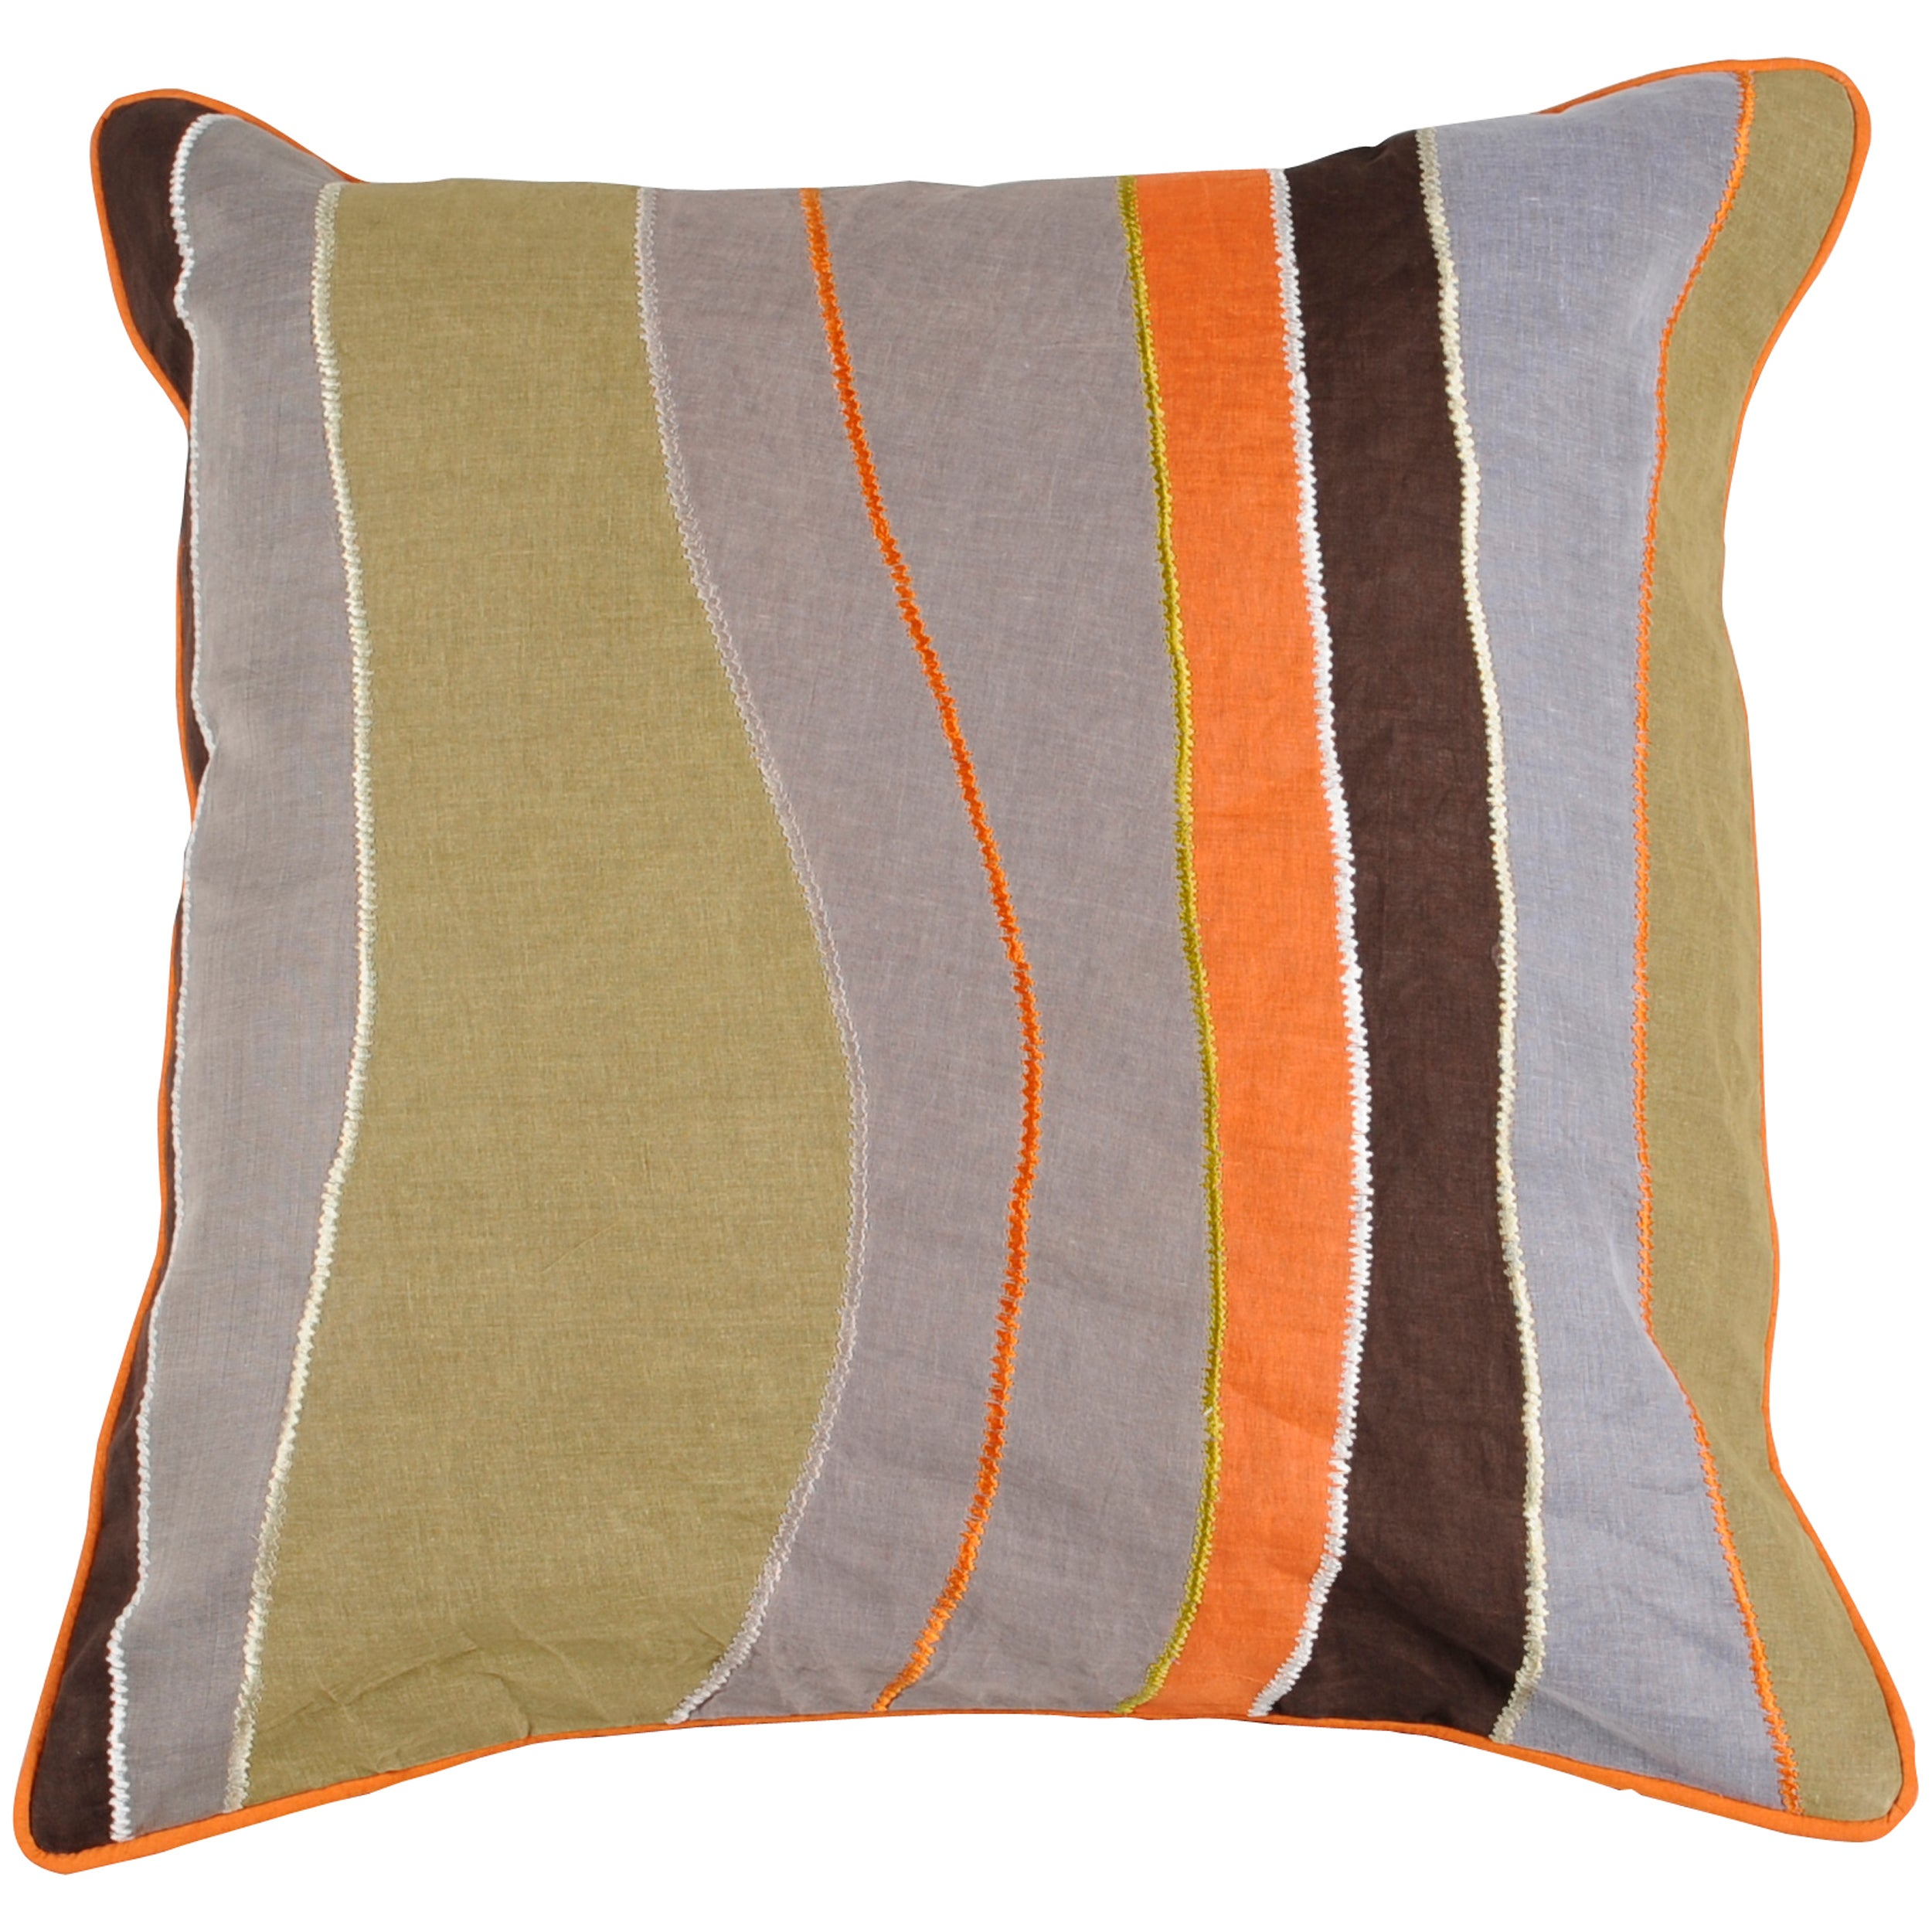 Pate Brown/ Sage/ Grey 18-inch Square Decorative Pillow